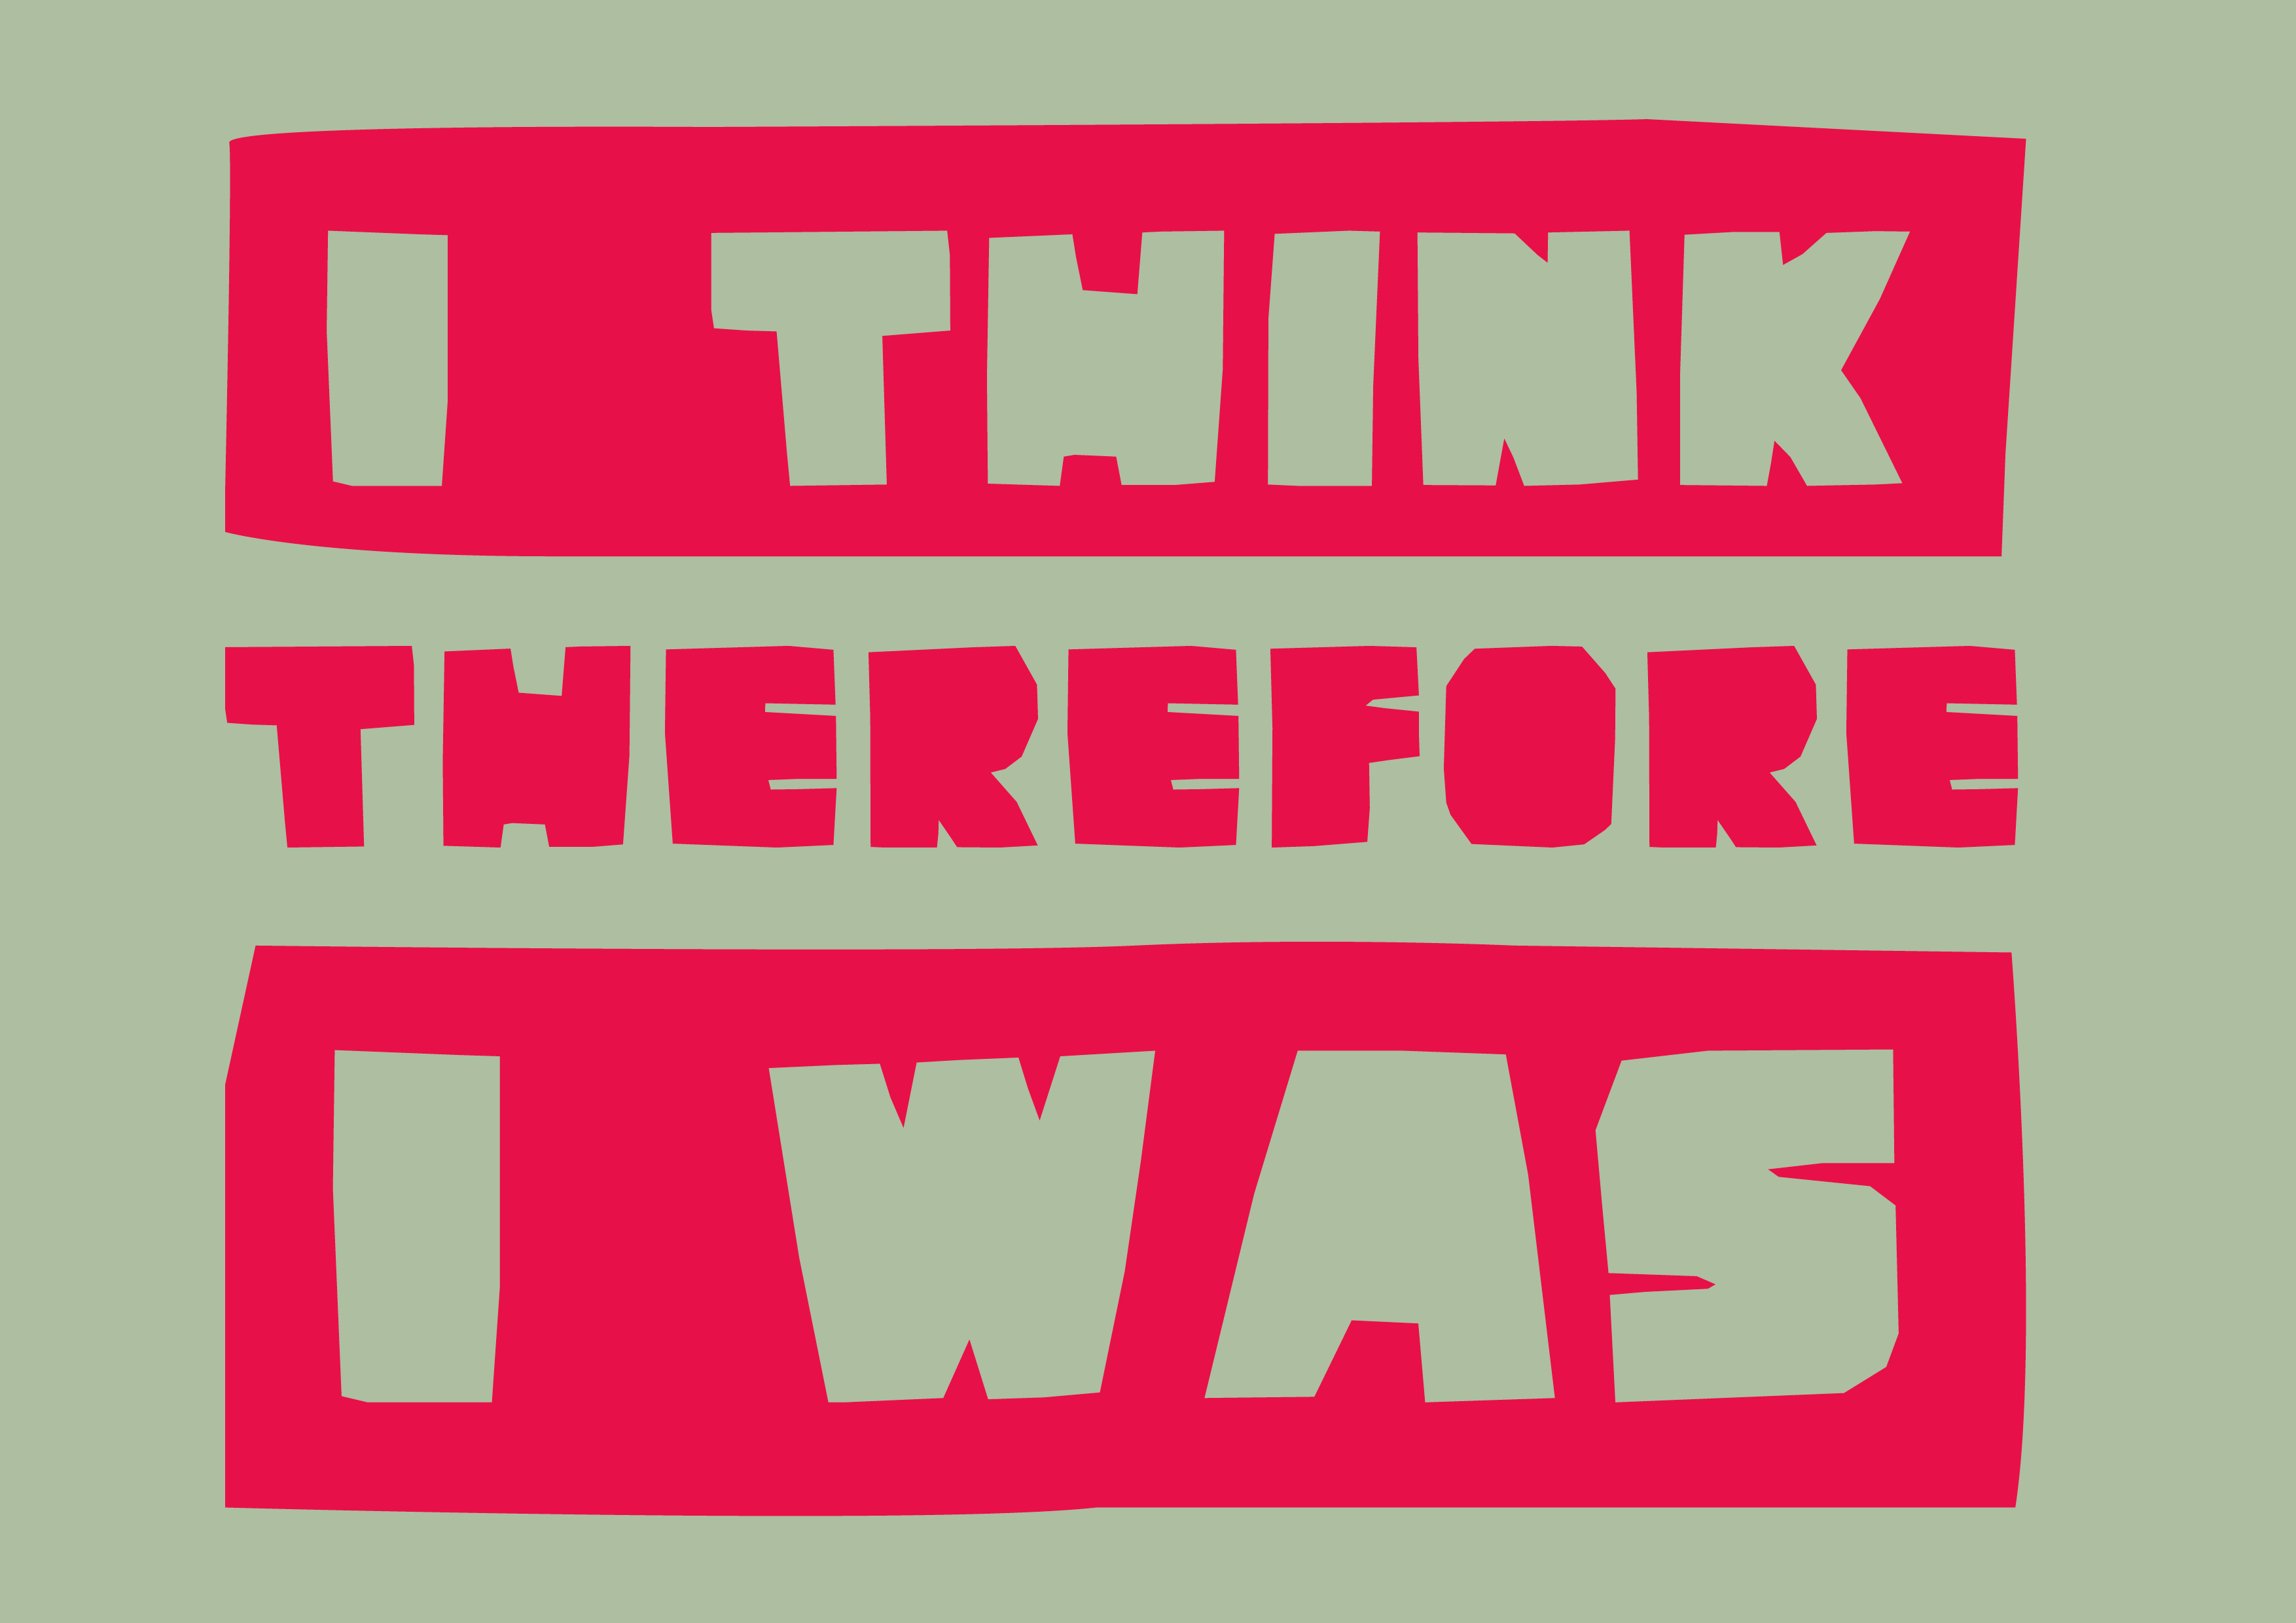 I think therefore I was